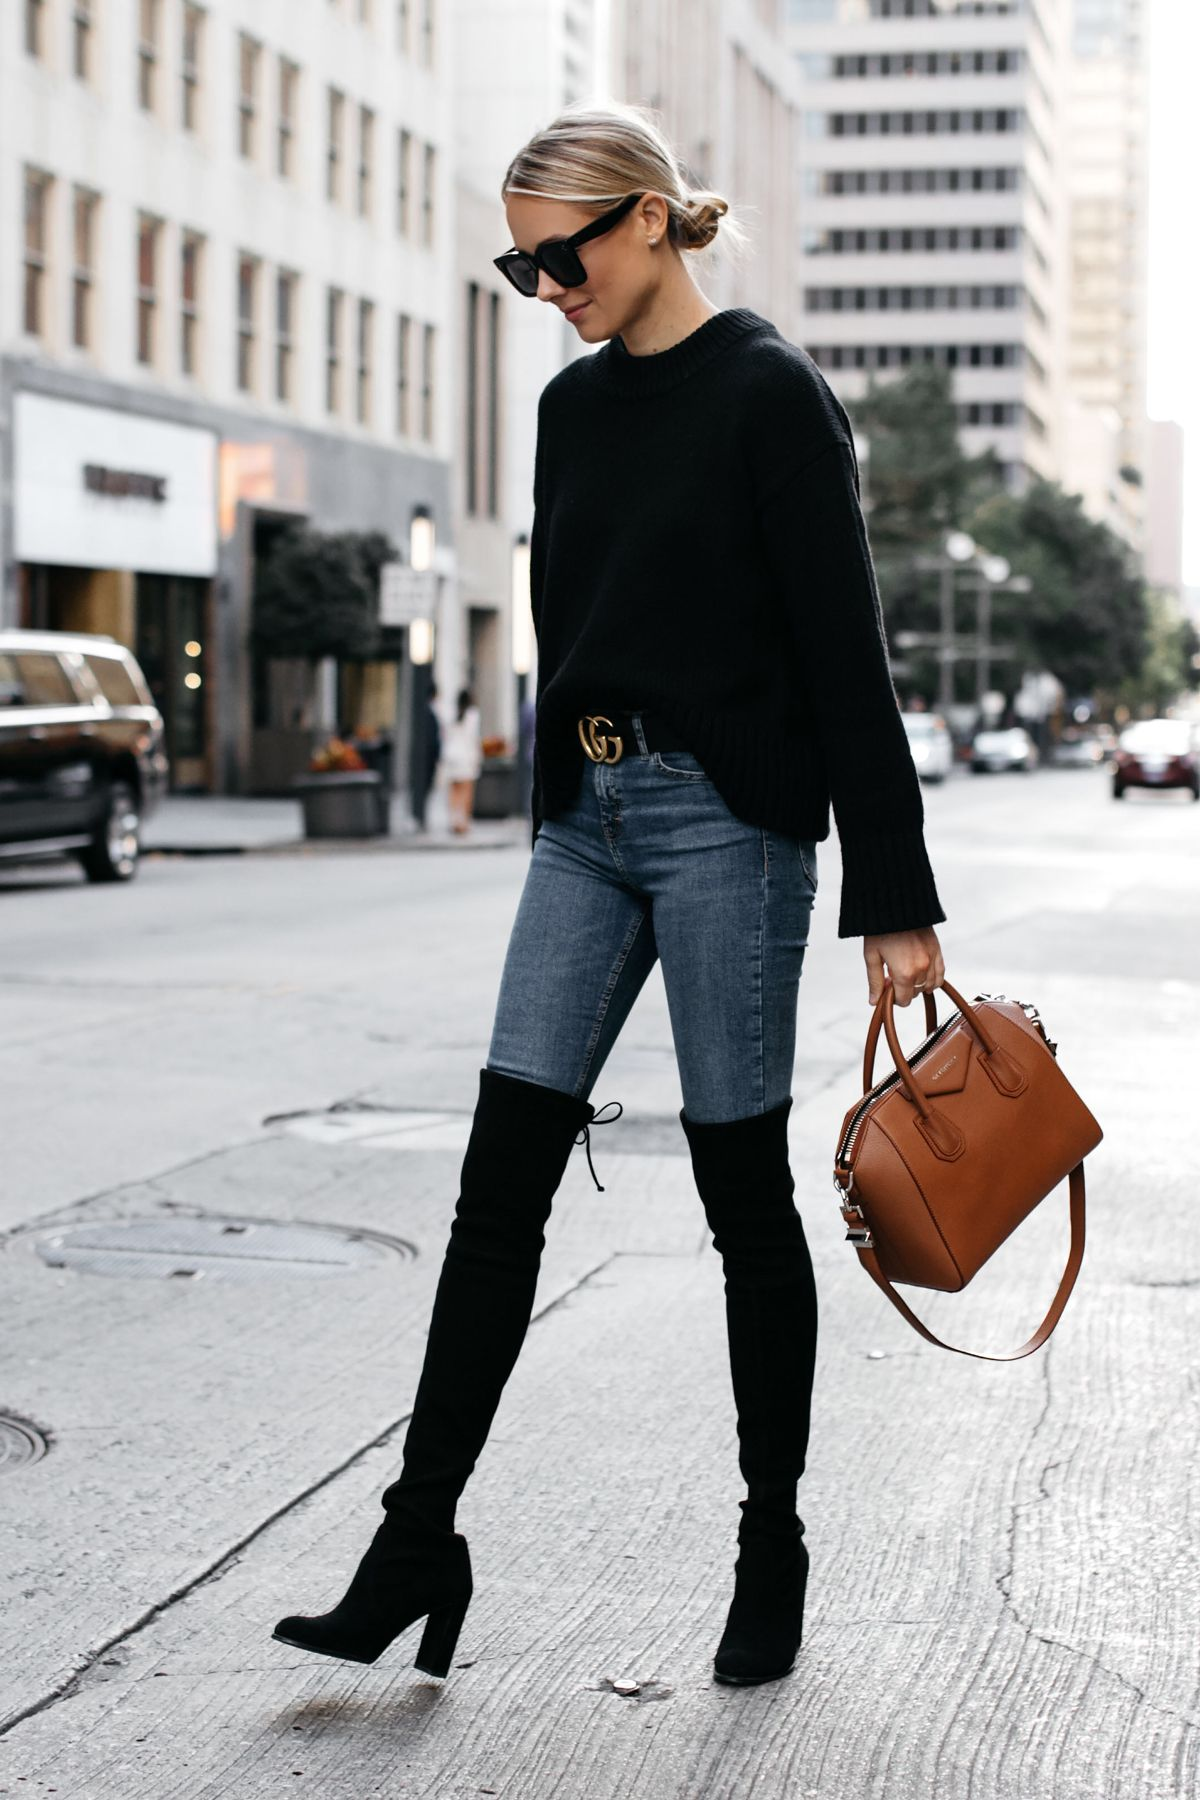 How To Style Over The Knee Boots When You're Petite | Poor Little It Girl